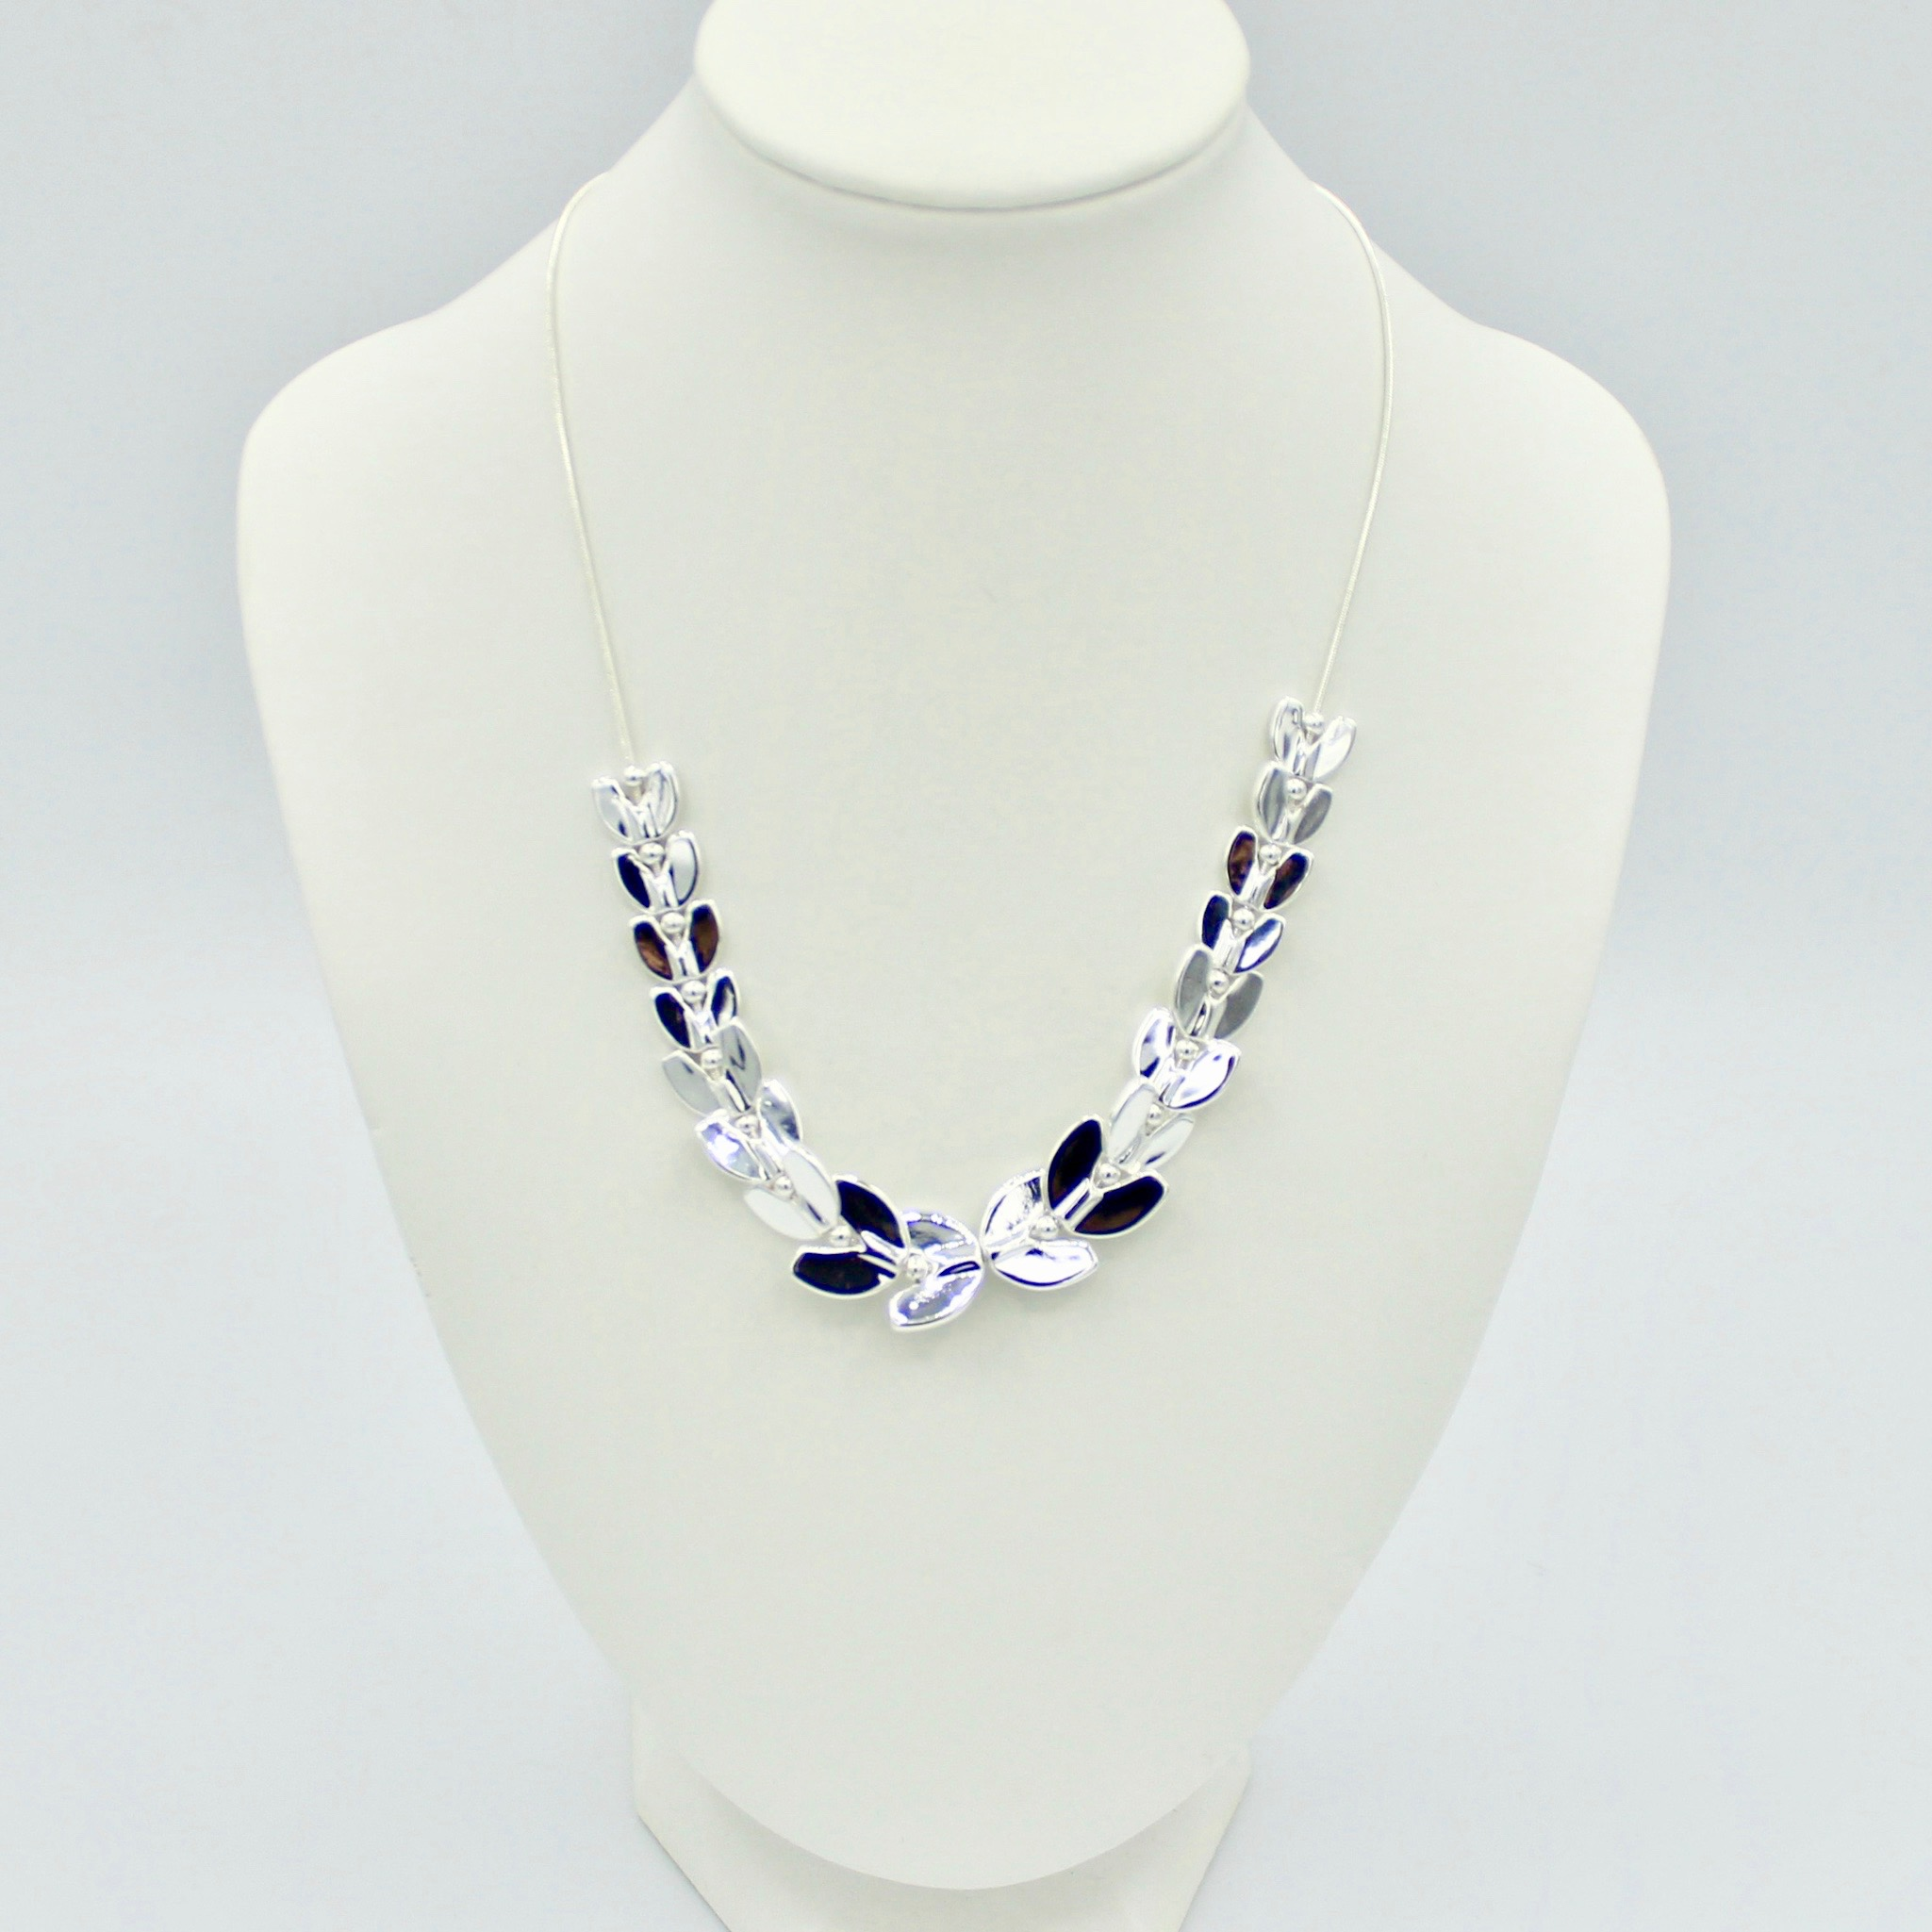 Leaf style affect necklace